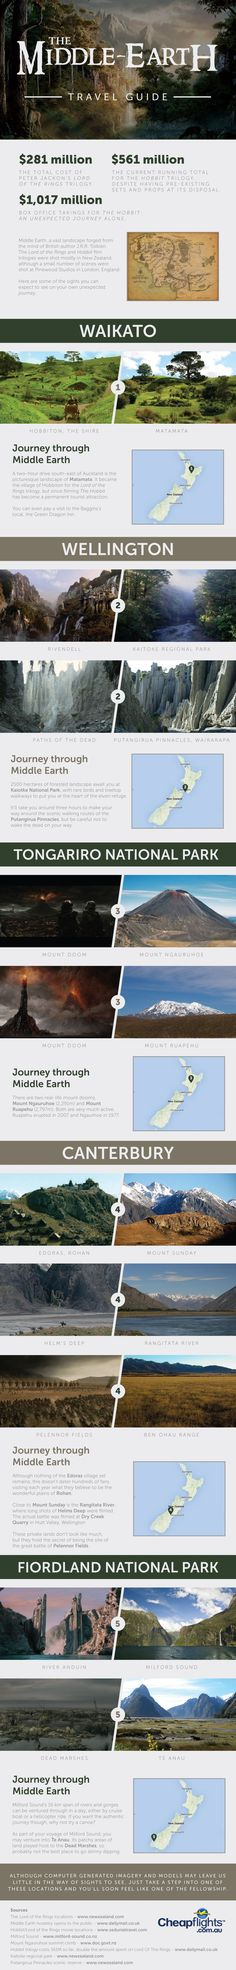 The Middle Earth - Travel Guide - Fans of The Hobbit Movies Will Love this Travel-graphic